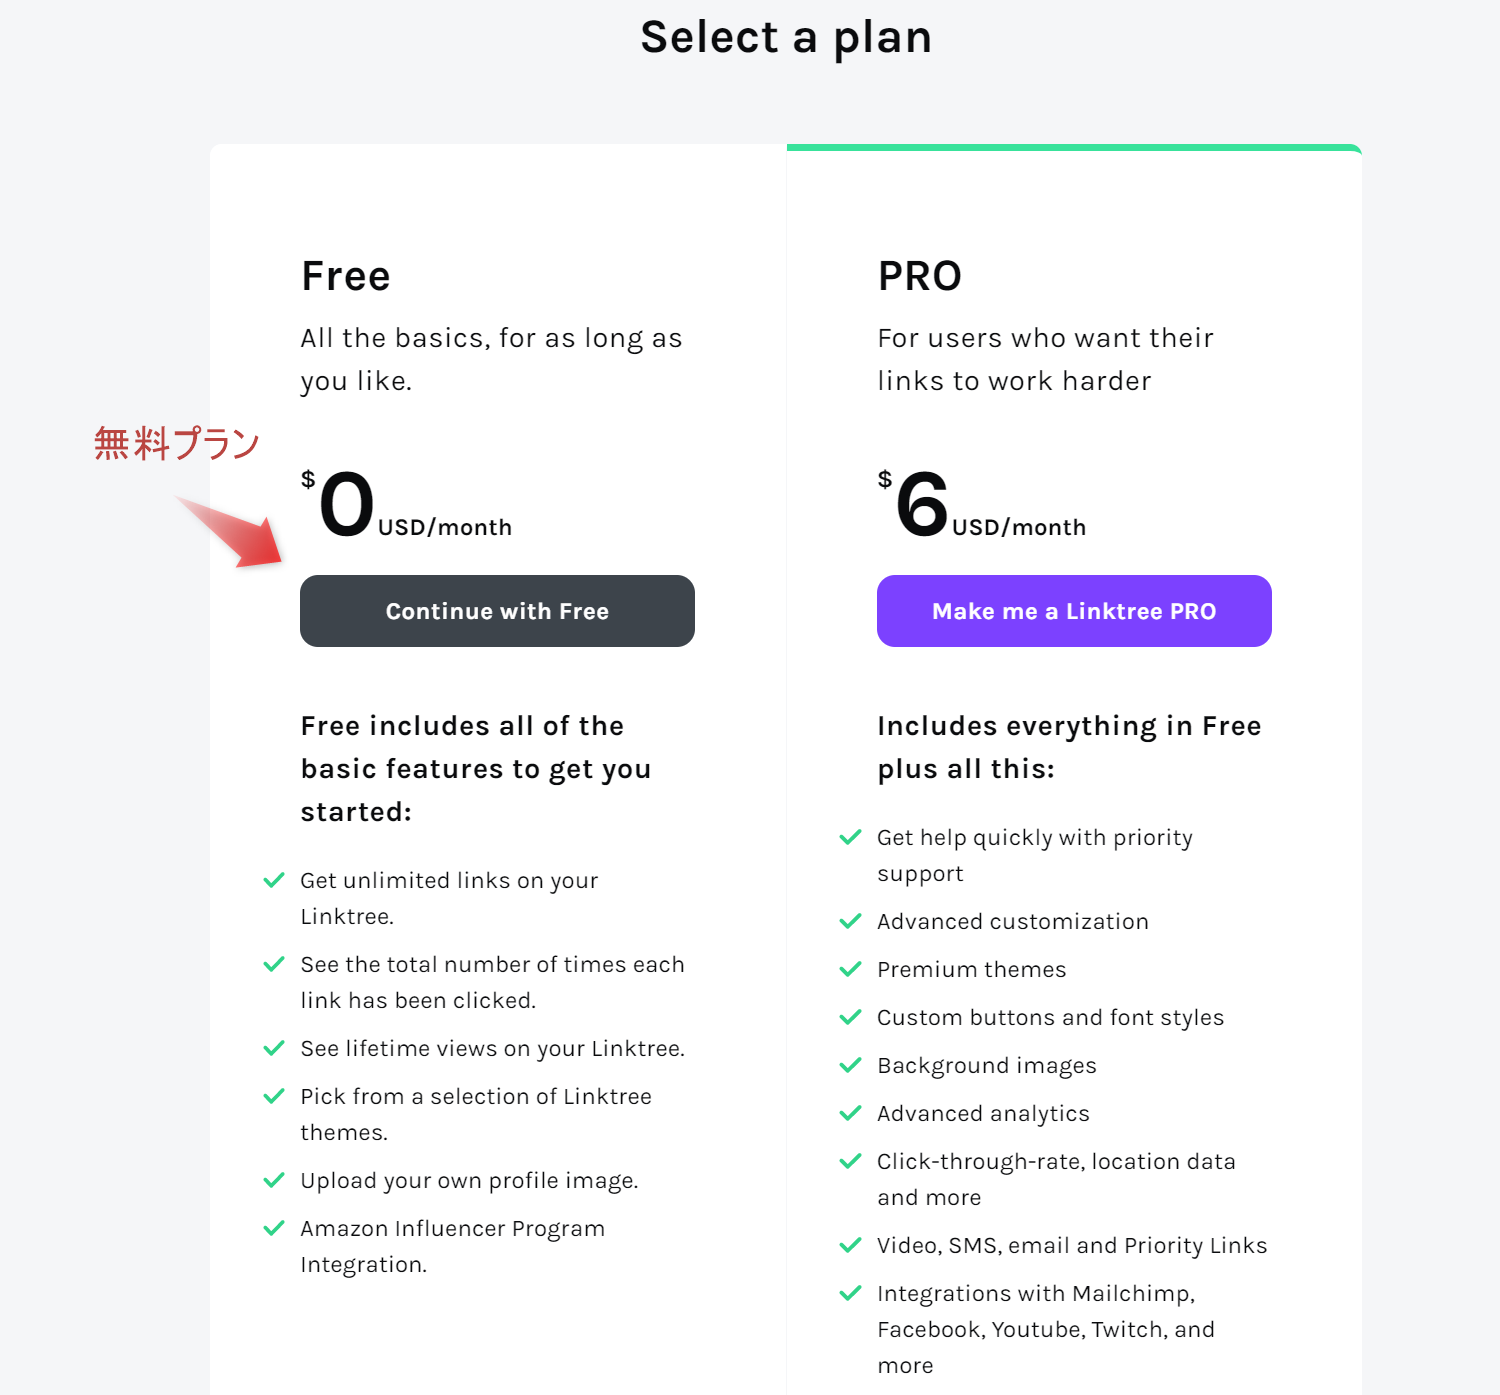 「continue with free」をクリックします